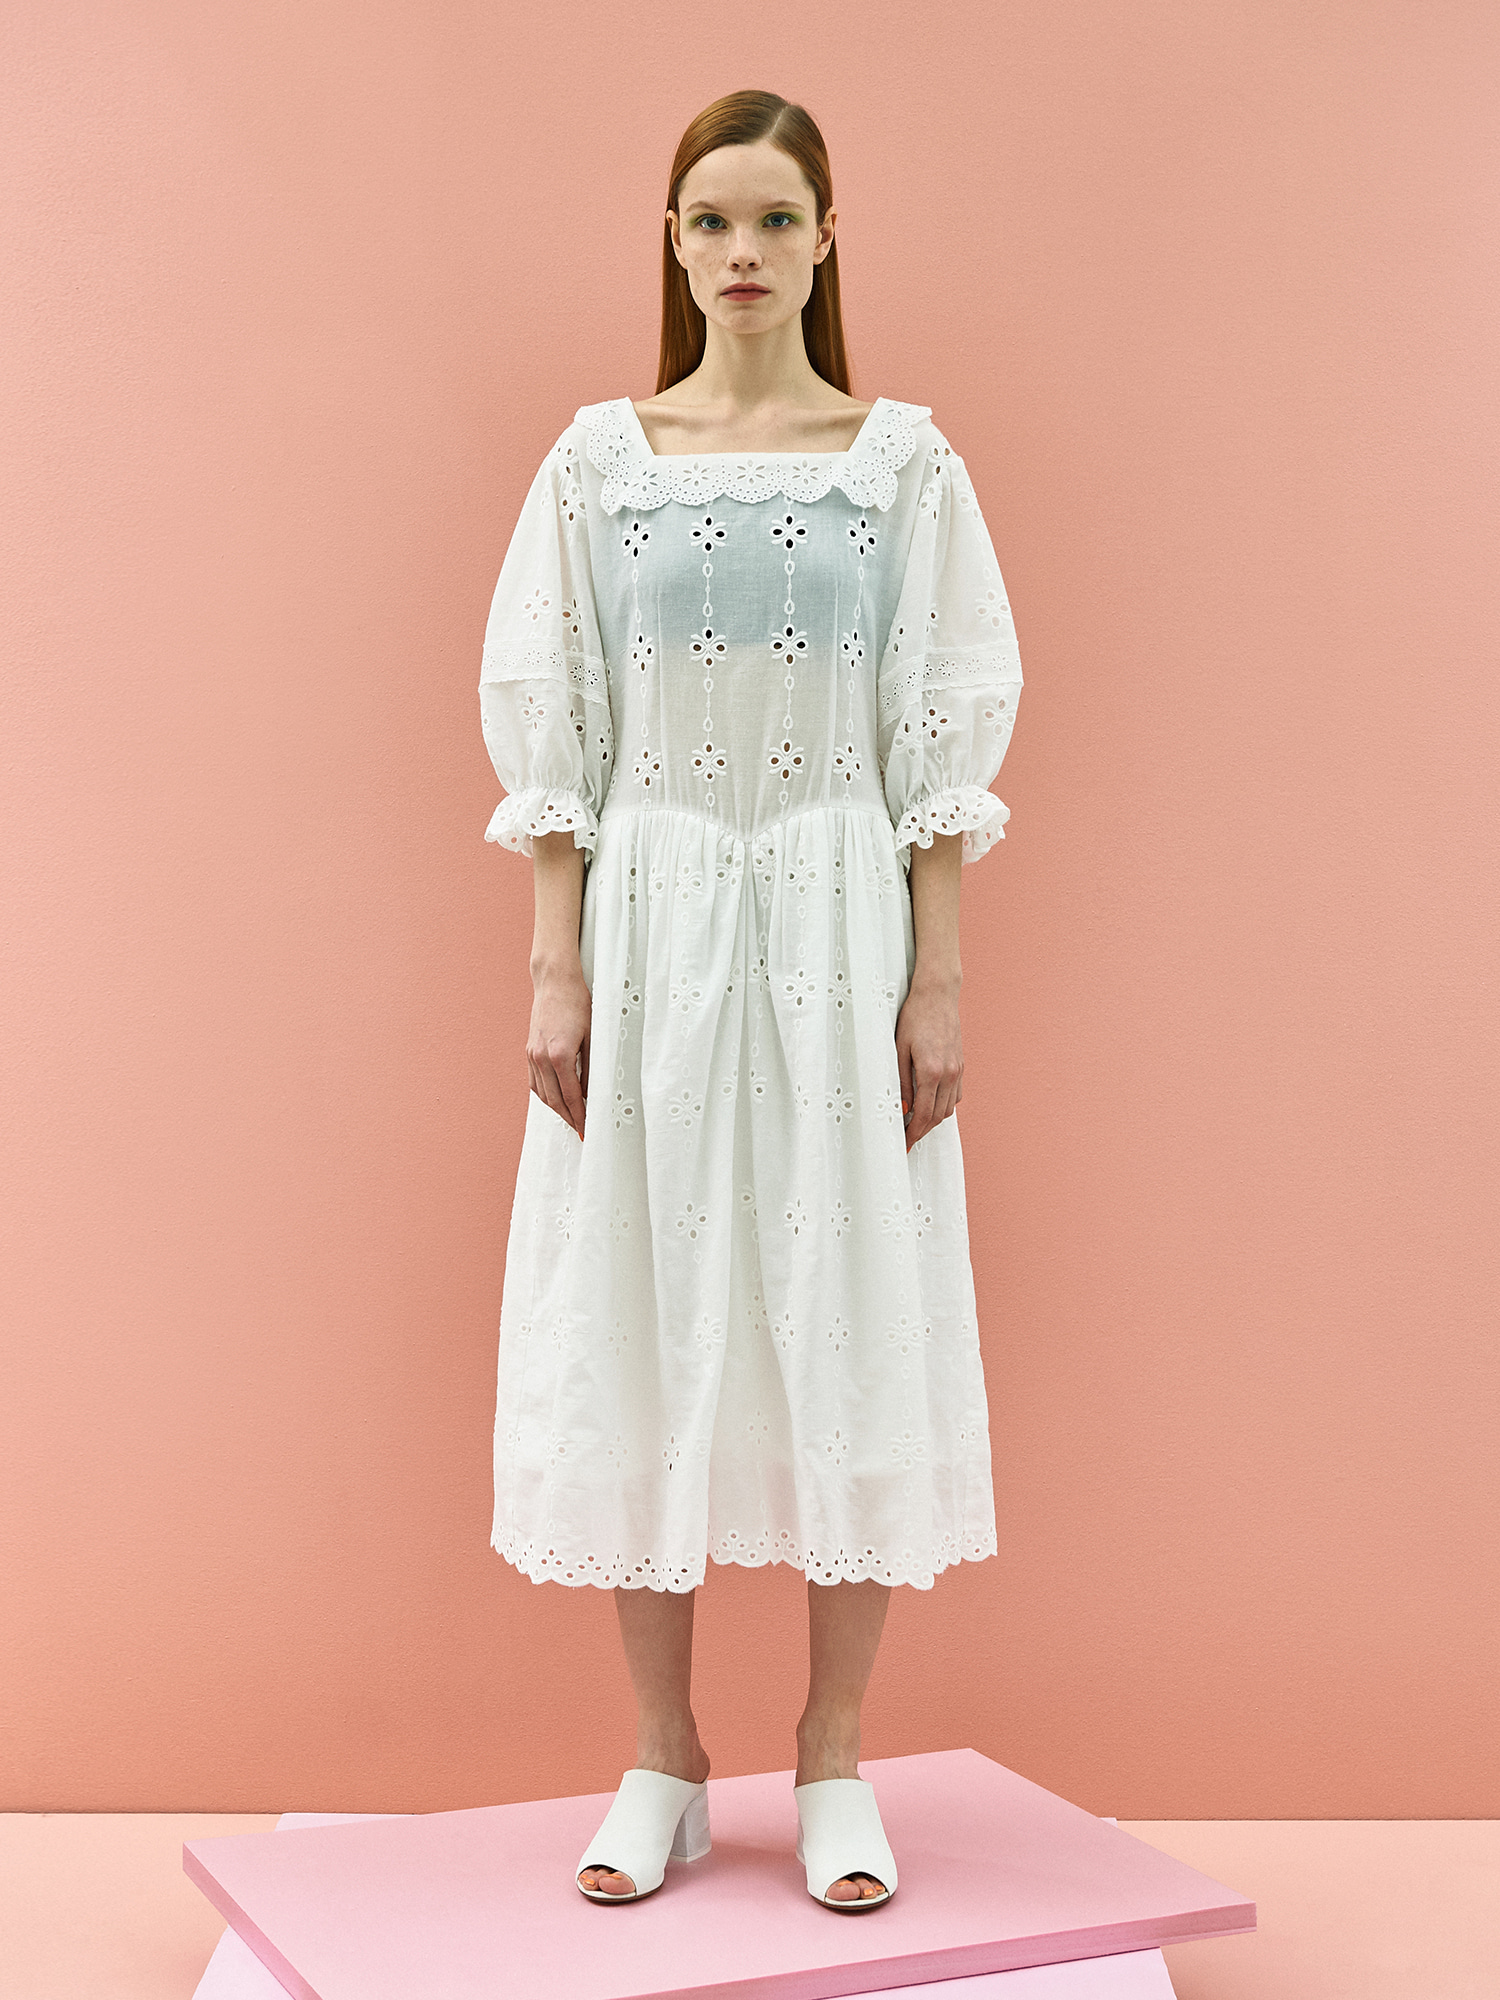 [주말특가30%]Girlish Lace Cotton Dress in White